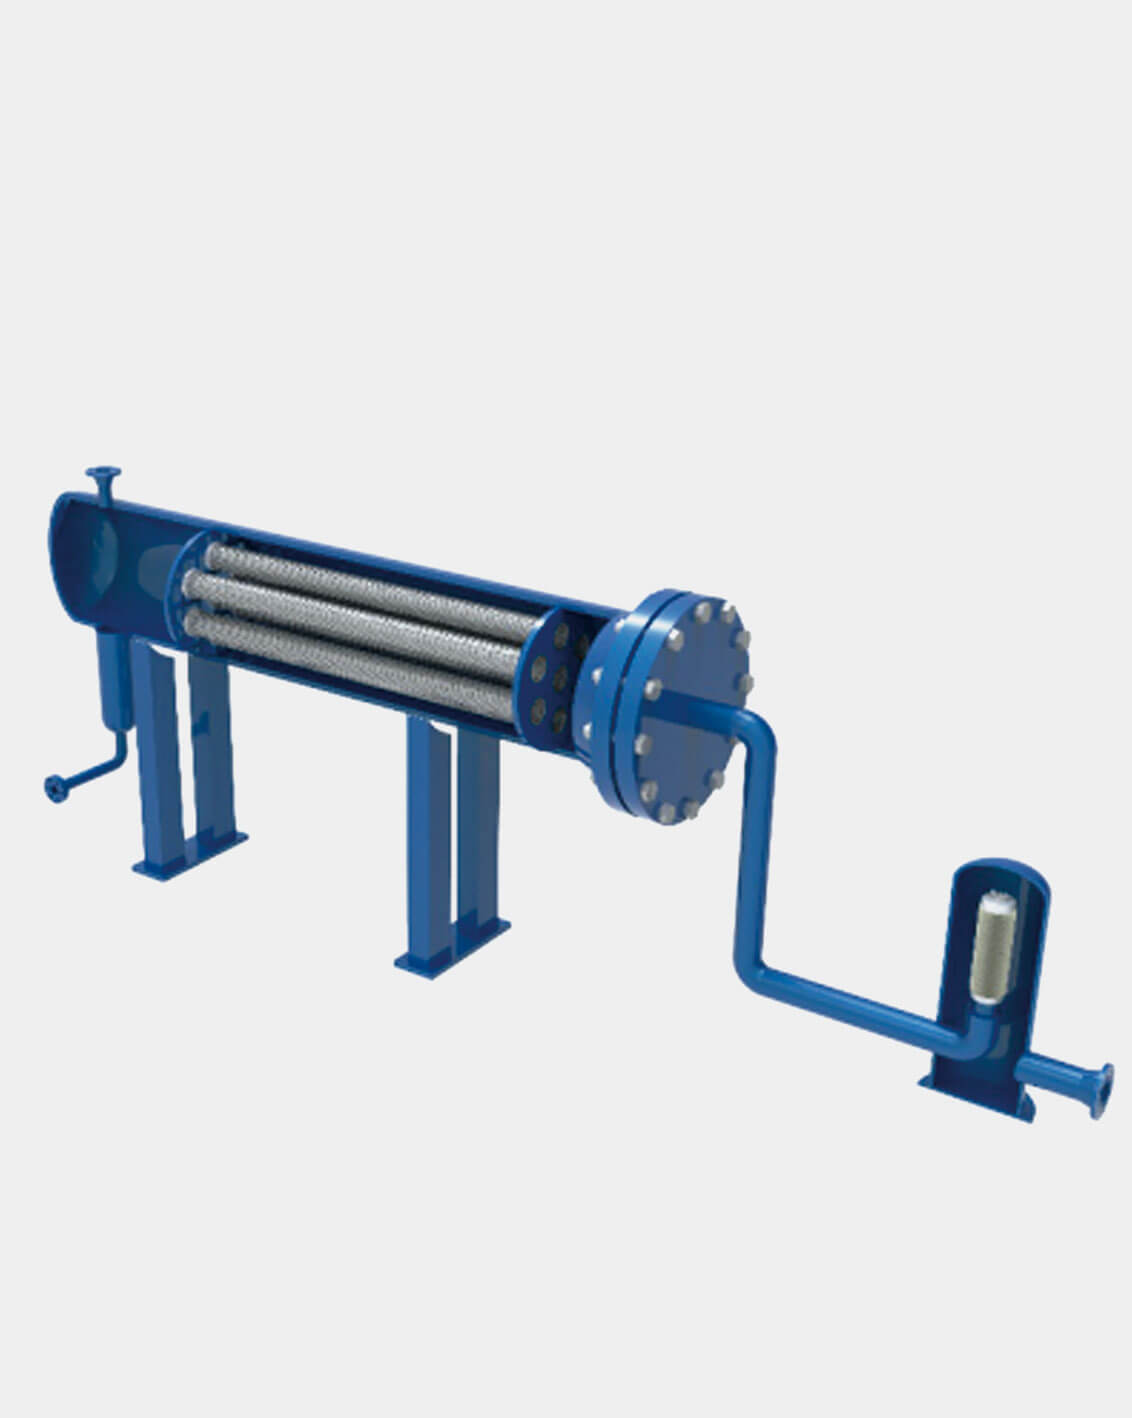 https://hcpetroleum.hk/imgs/products/filter_separator_10.jpg